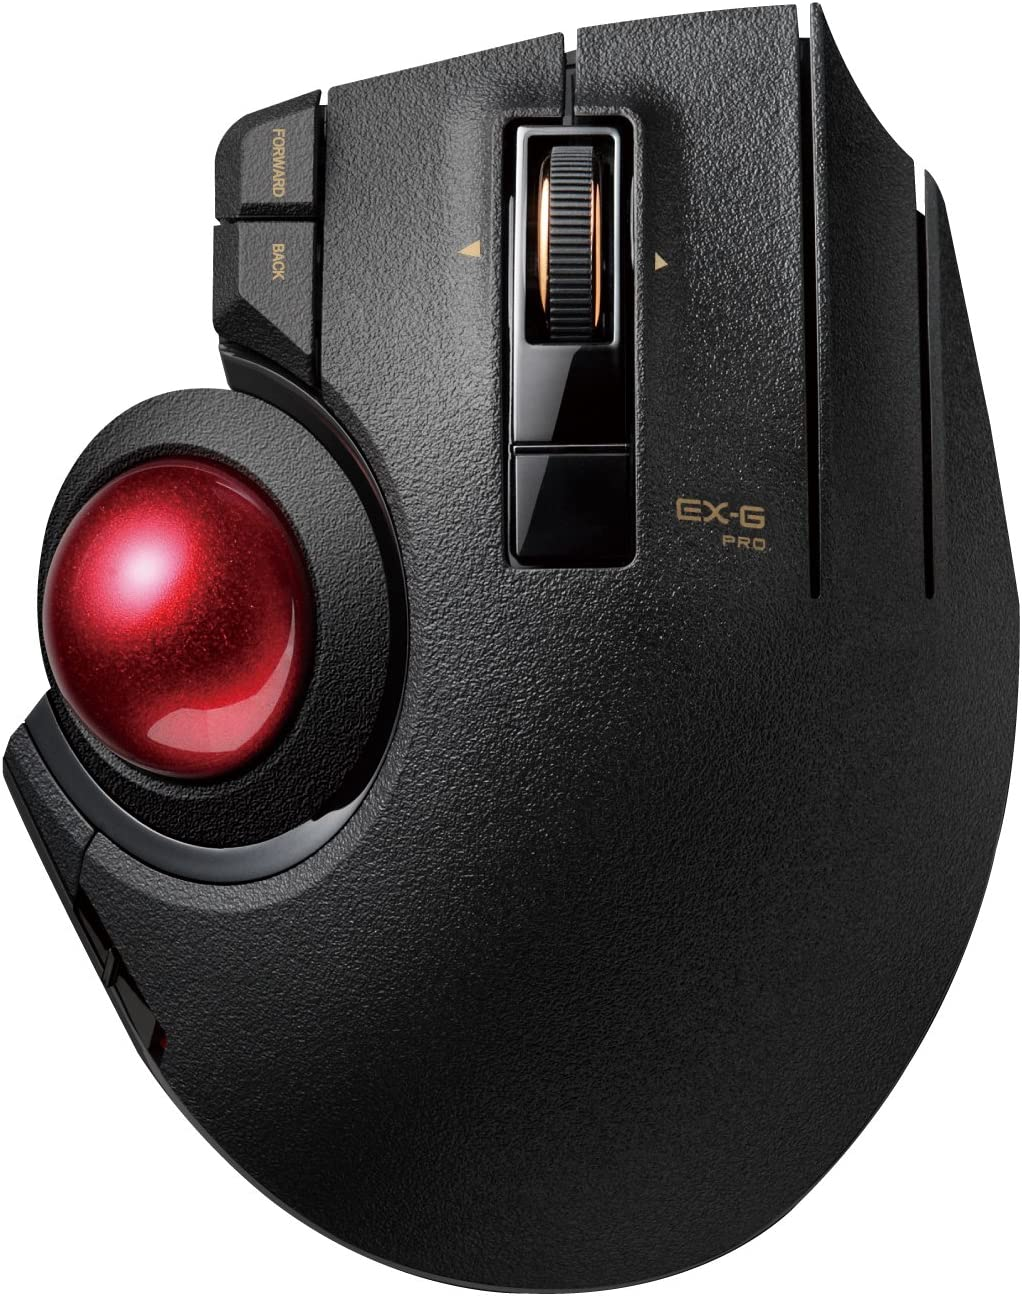 ELECOM Wired/Wireless/Bluetooth Thumb-Operated Trackball Mouse, 8-Button Function with Smooth Tracking, Precision Optical Gaming Sensor (M-XPT1MRXBK)